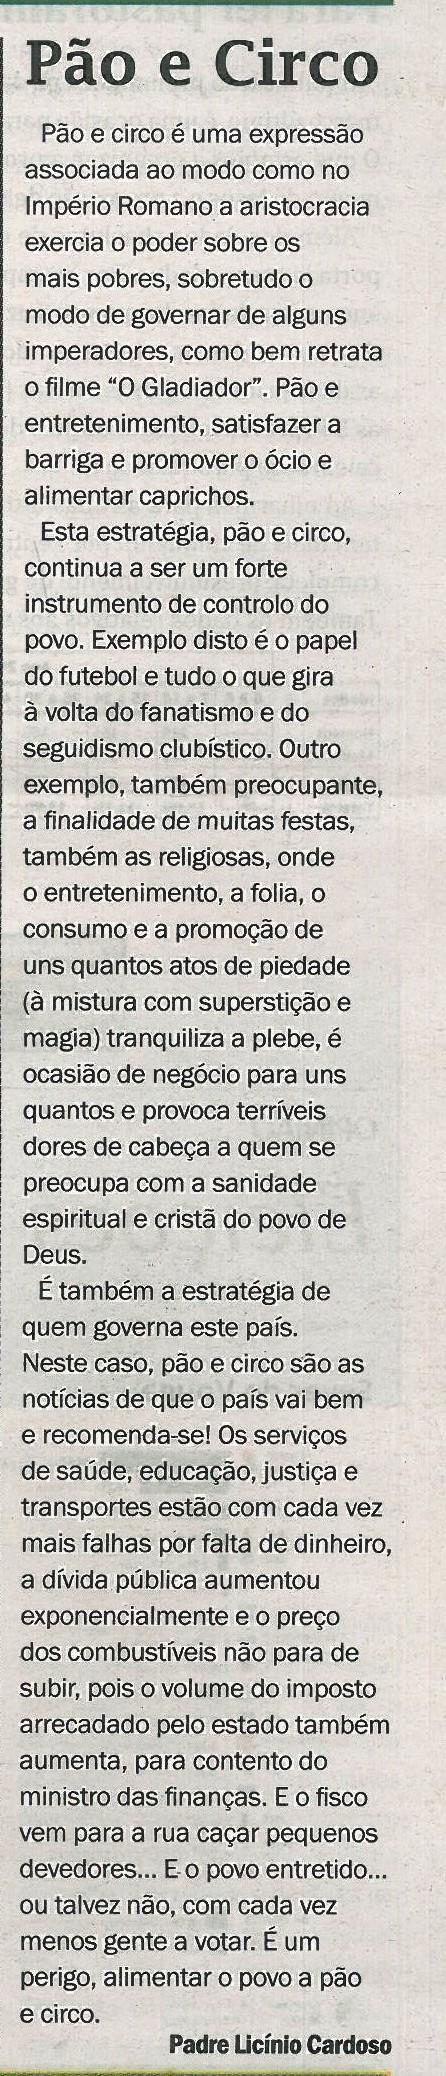 TV-jun.'19-p.1-Pão e circo.jpg